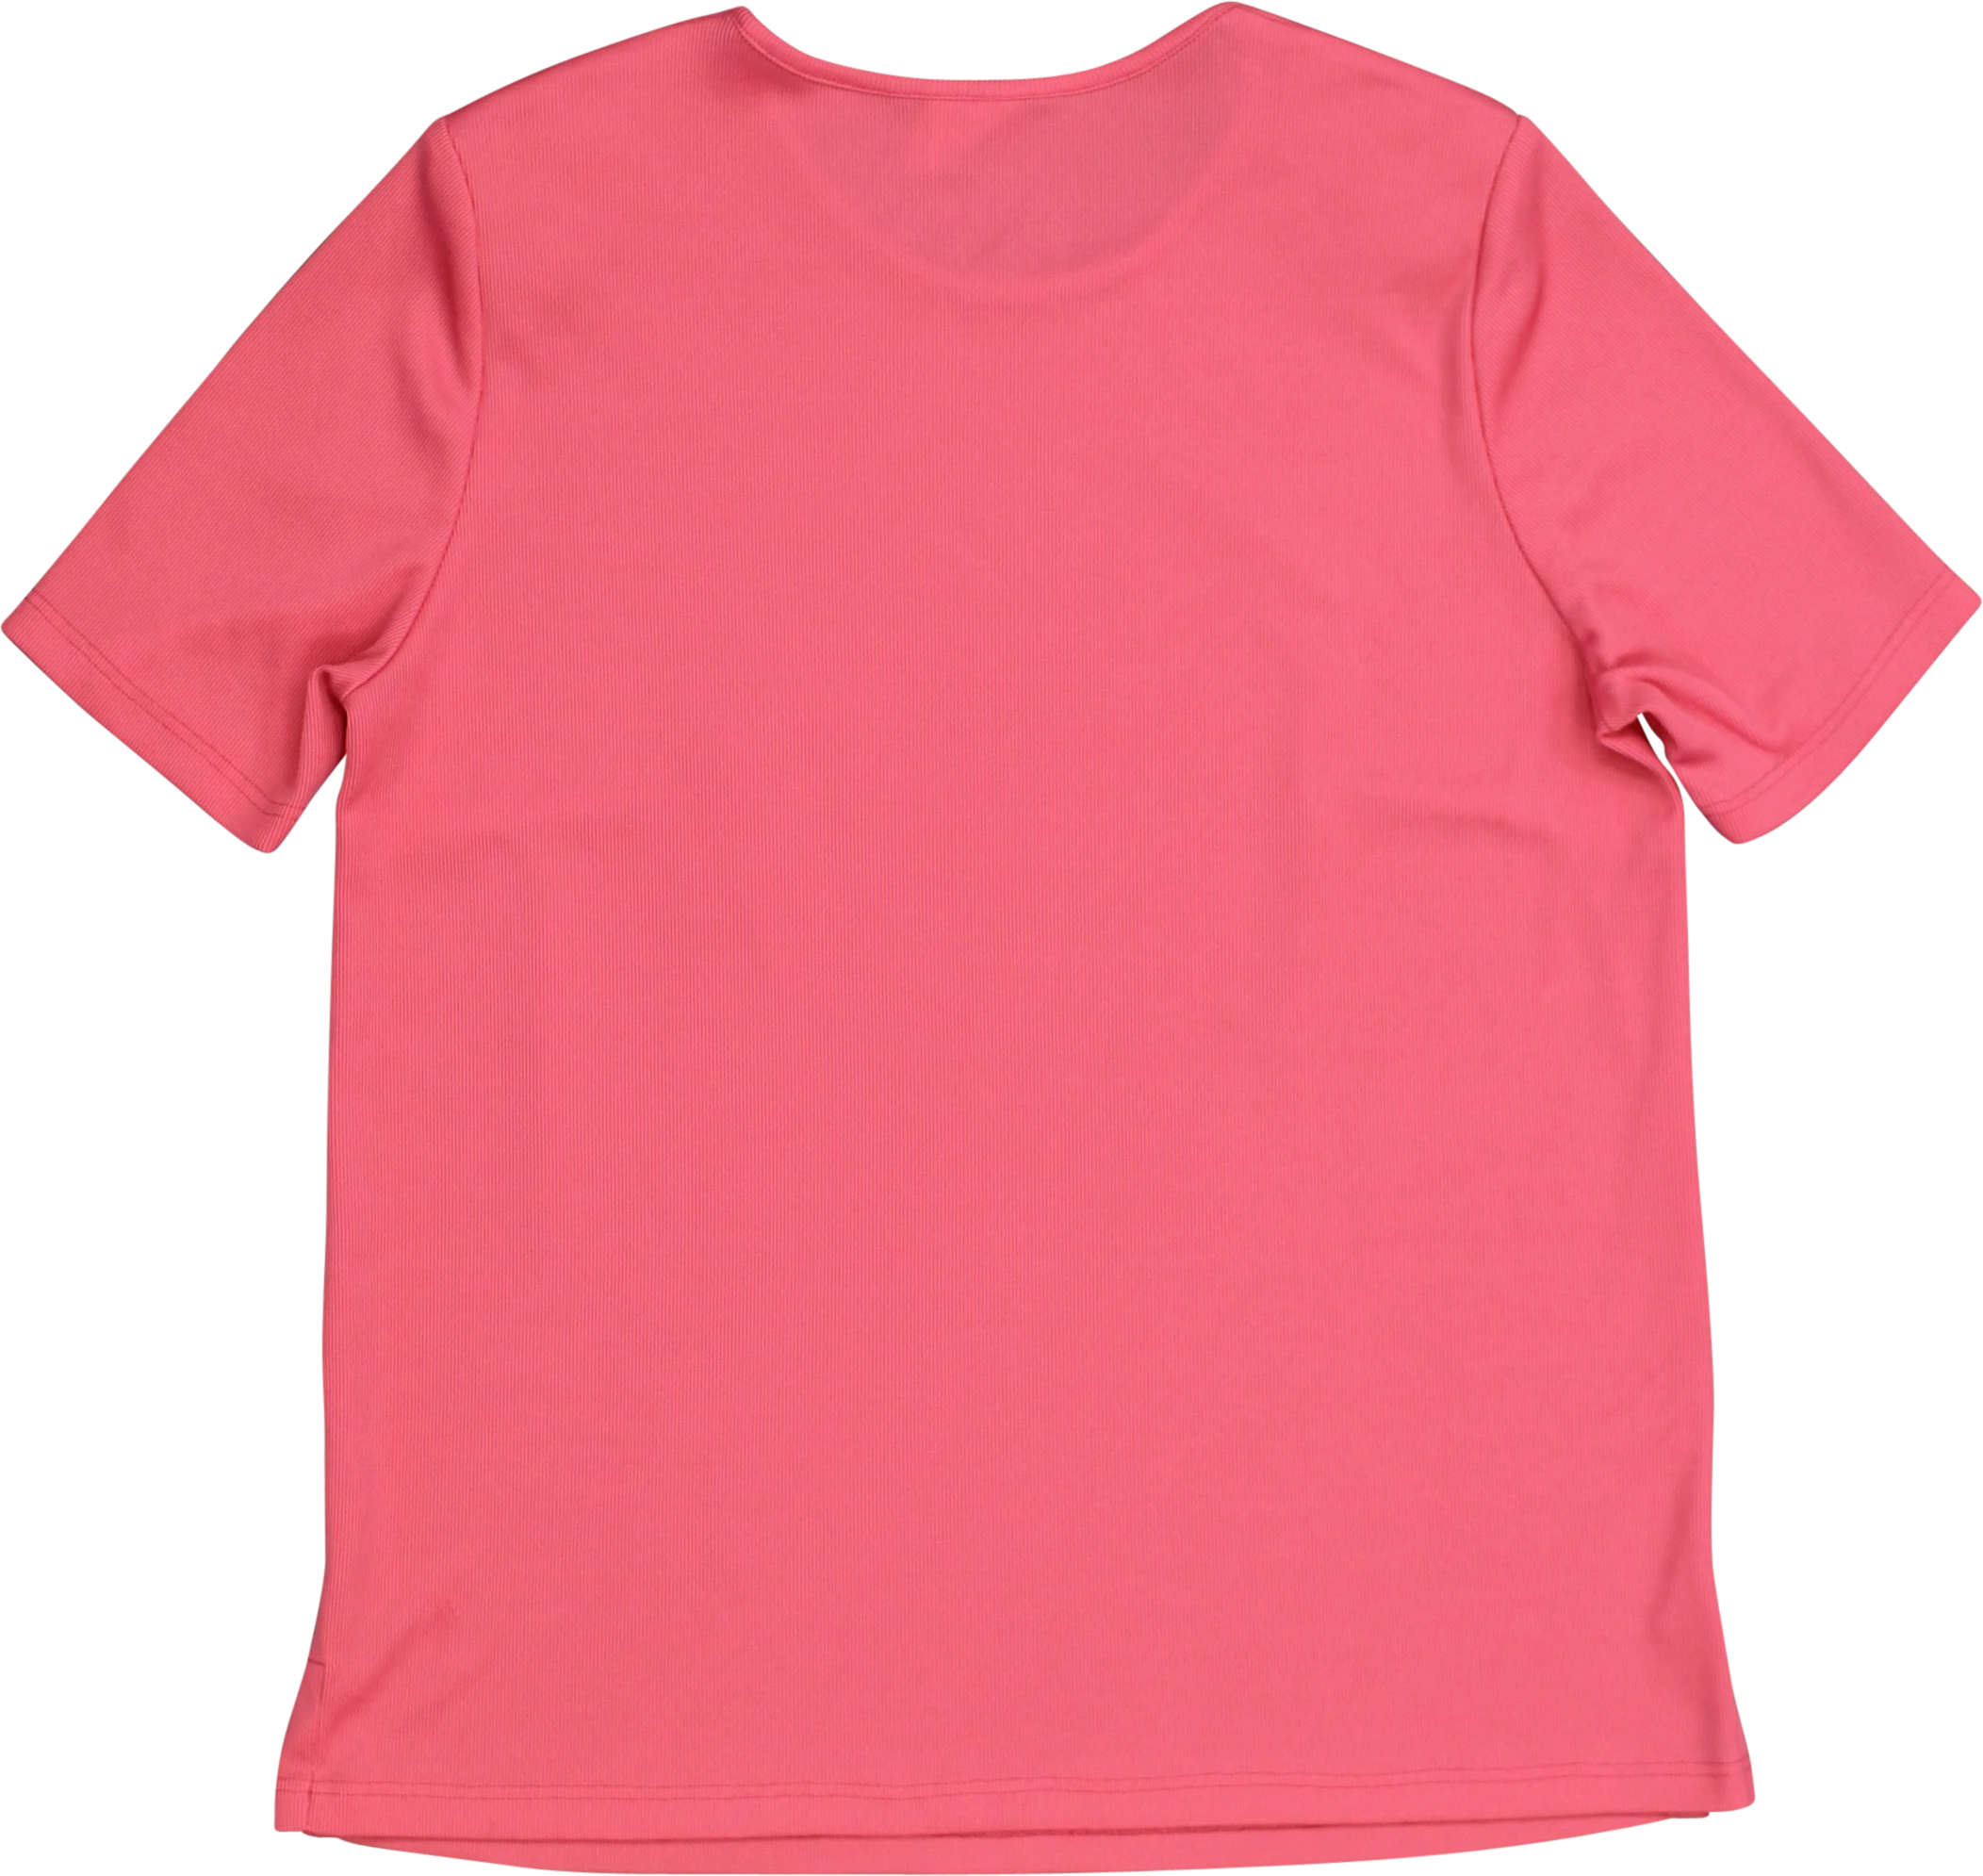 Pink T-shirt with Shoulder Pads